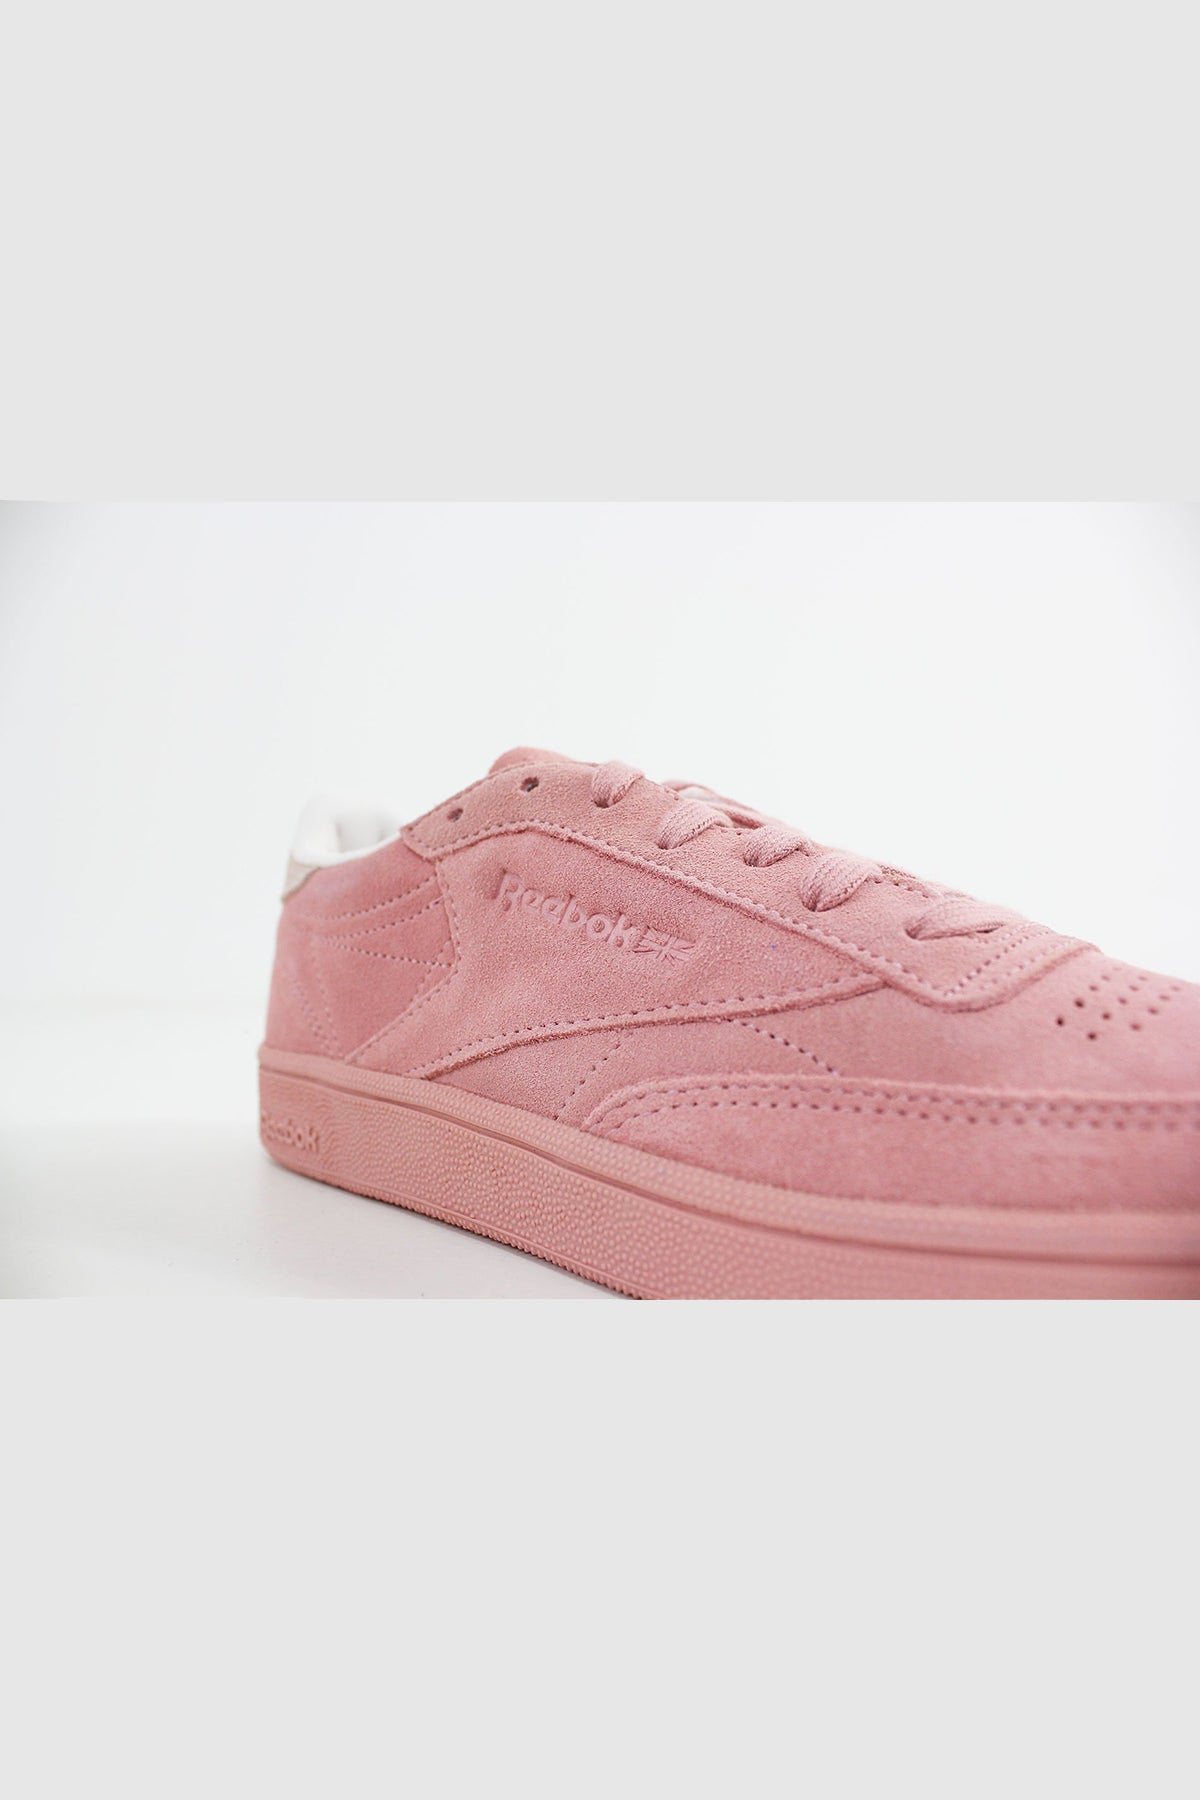 Reebok - Club C 85 NBK Women (Chalk Pink/ Pale Pink) CM9053